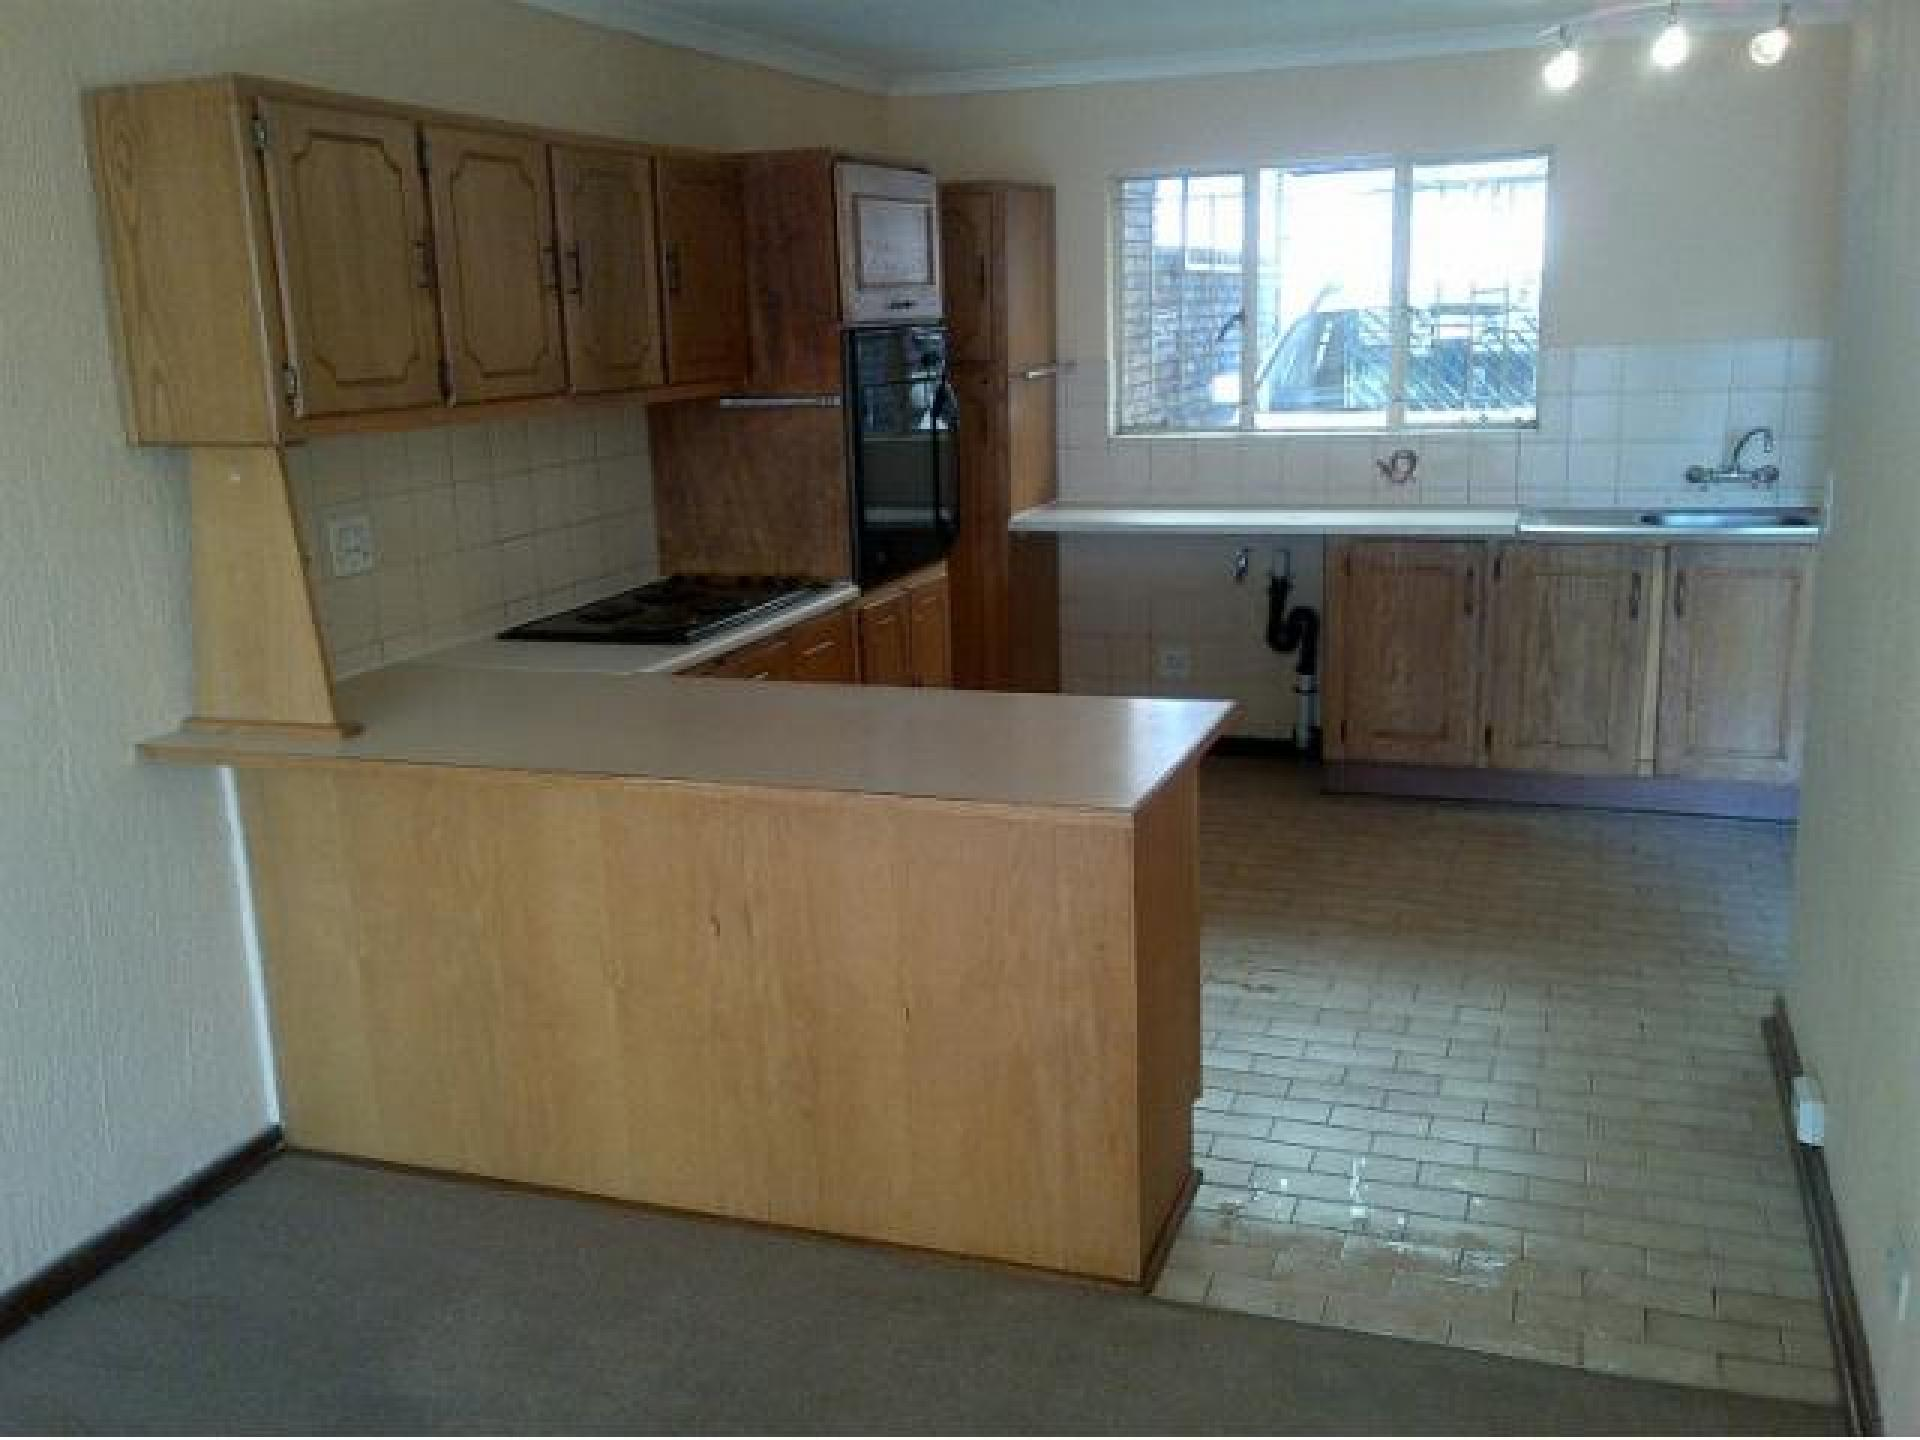 Kitchen of property in Birch Acres